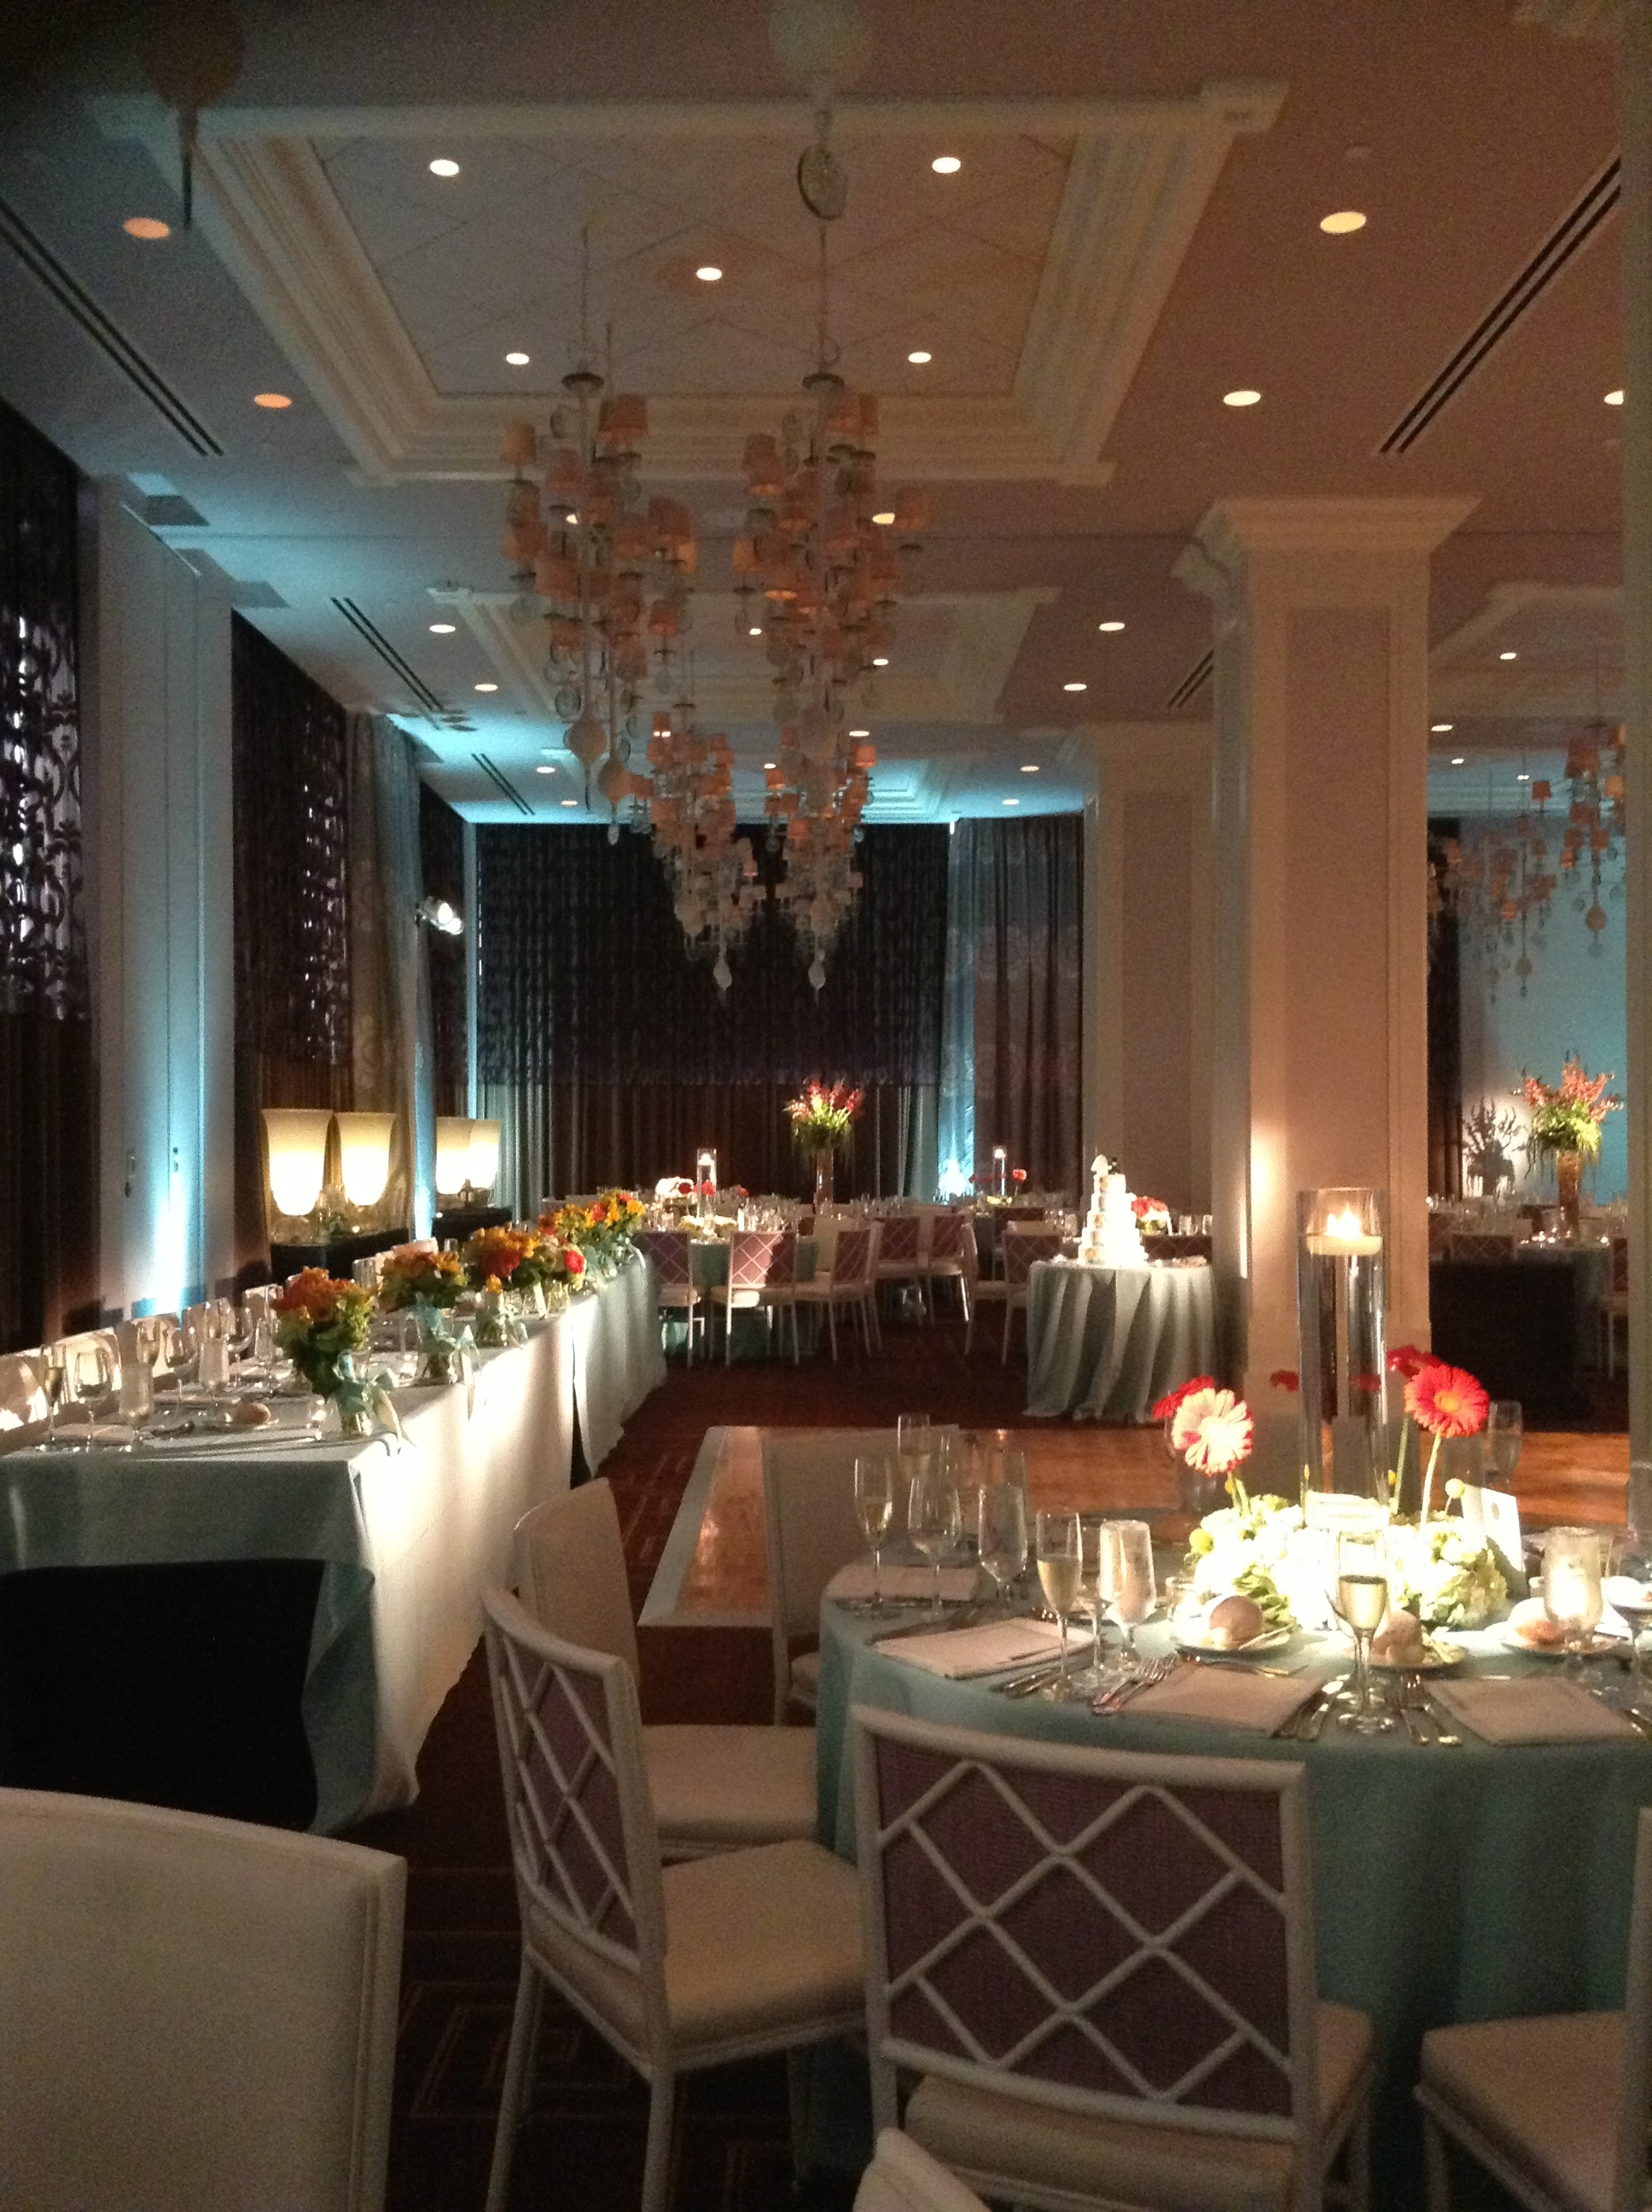 Philadelphia_Wedding_planner_Angela_Malicki_events_hotel_monaco_Philadelphia_Nina_Price